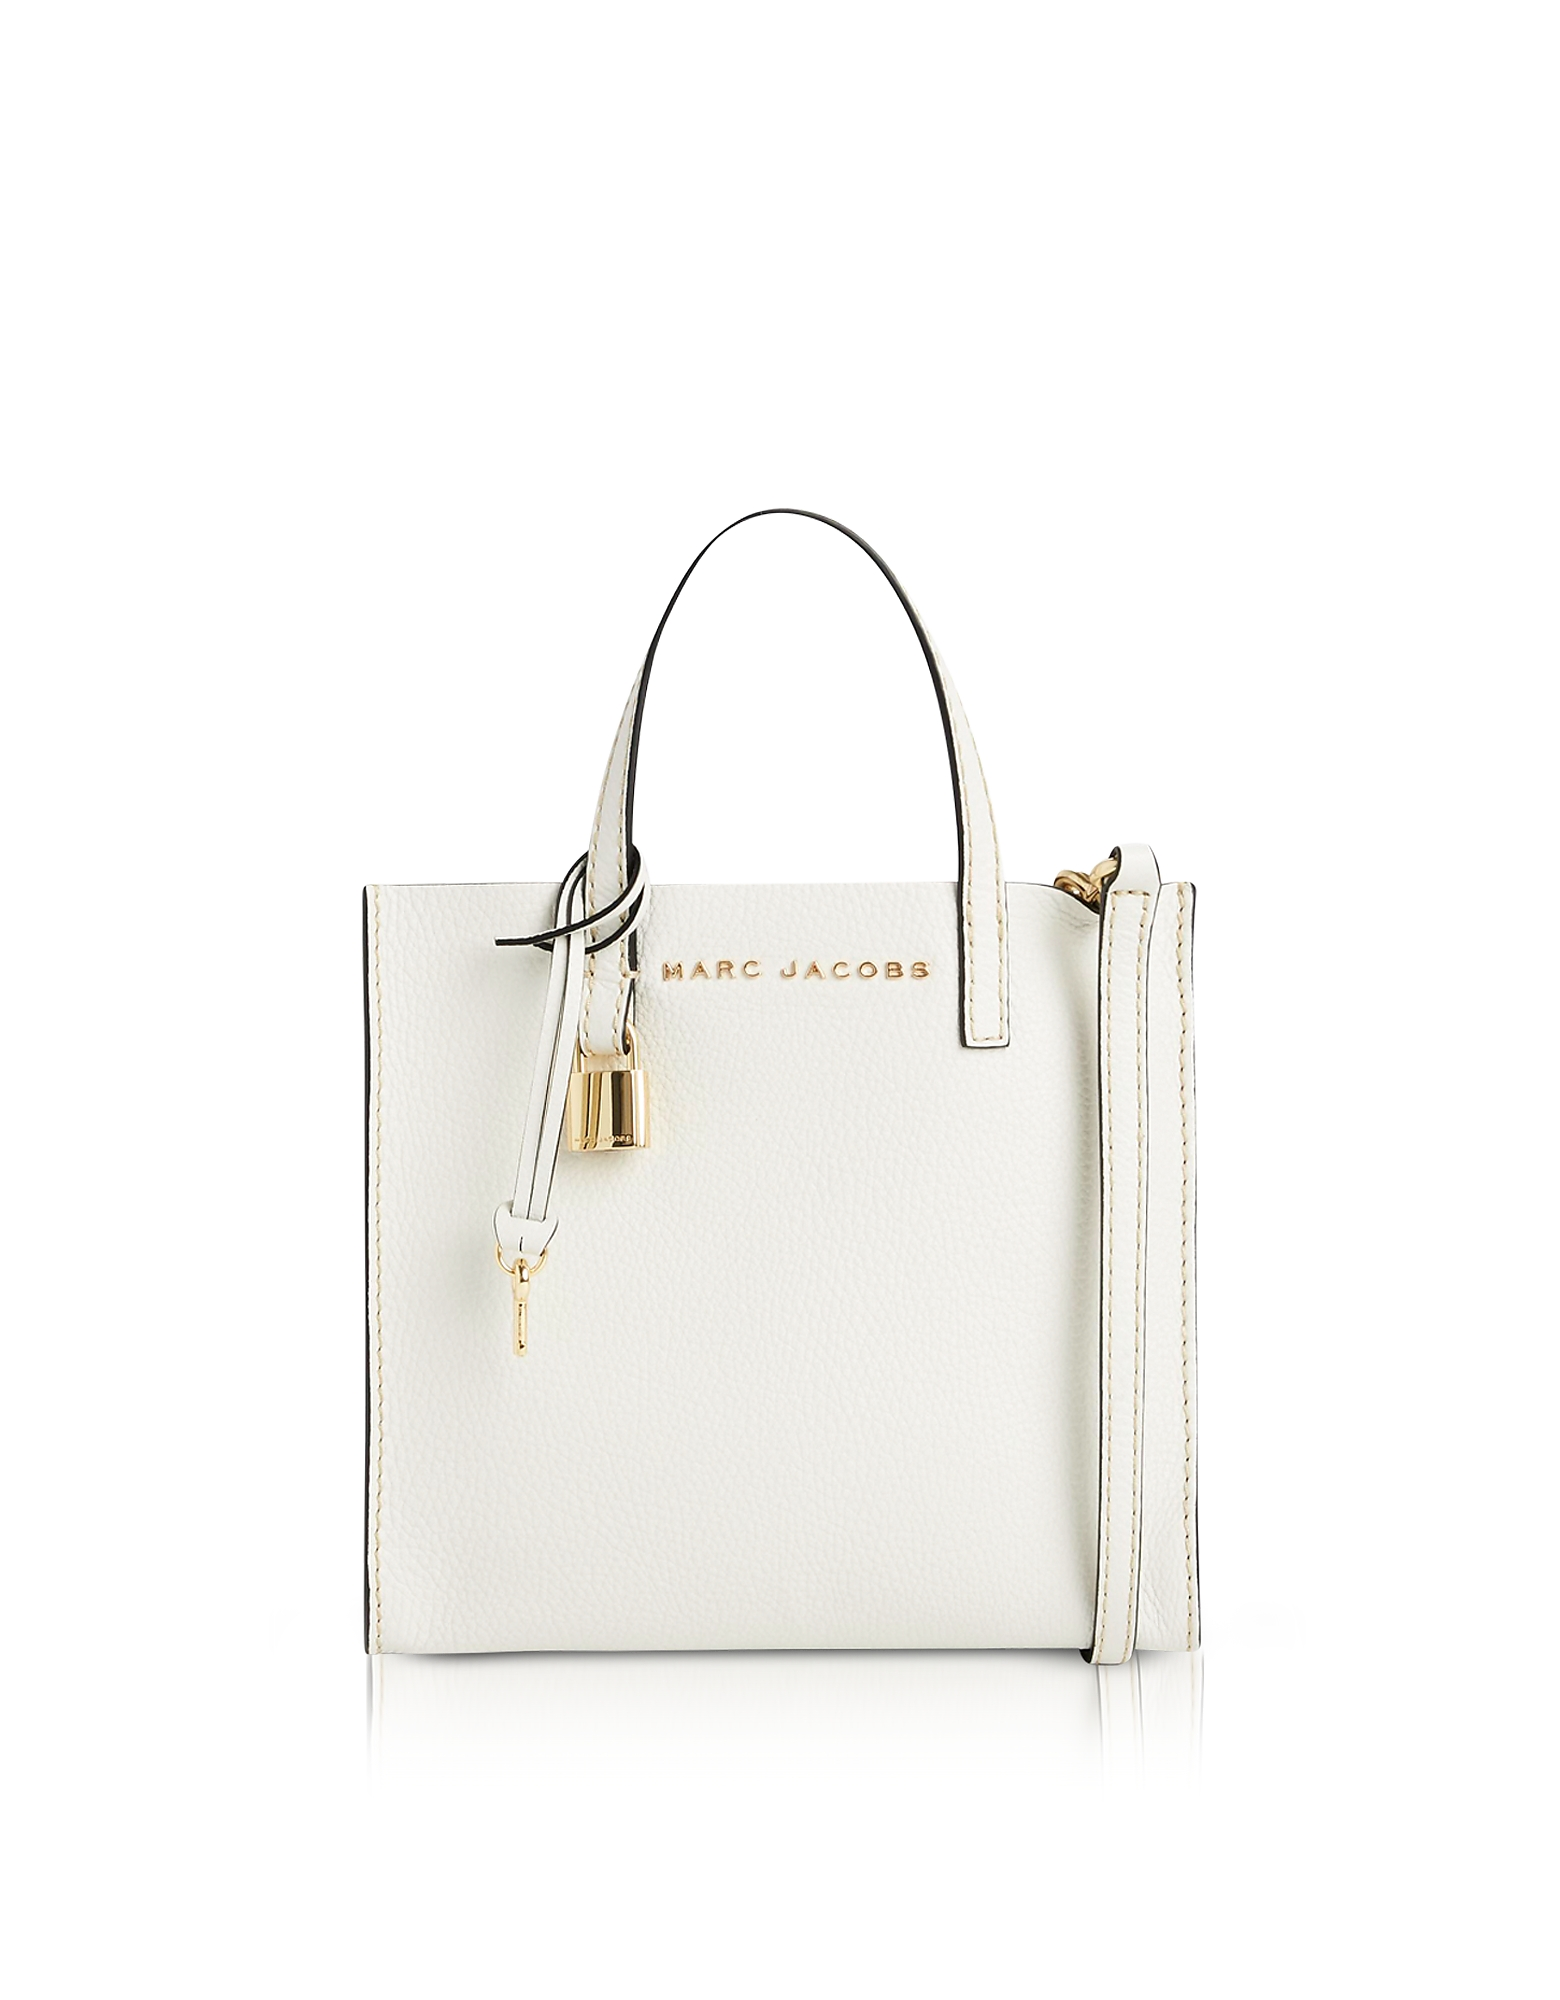 Marc Jacobs Handbags, White Glow Leather The Mini Grind Tote Bag